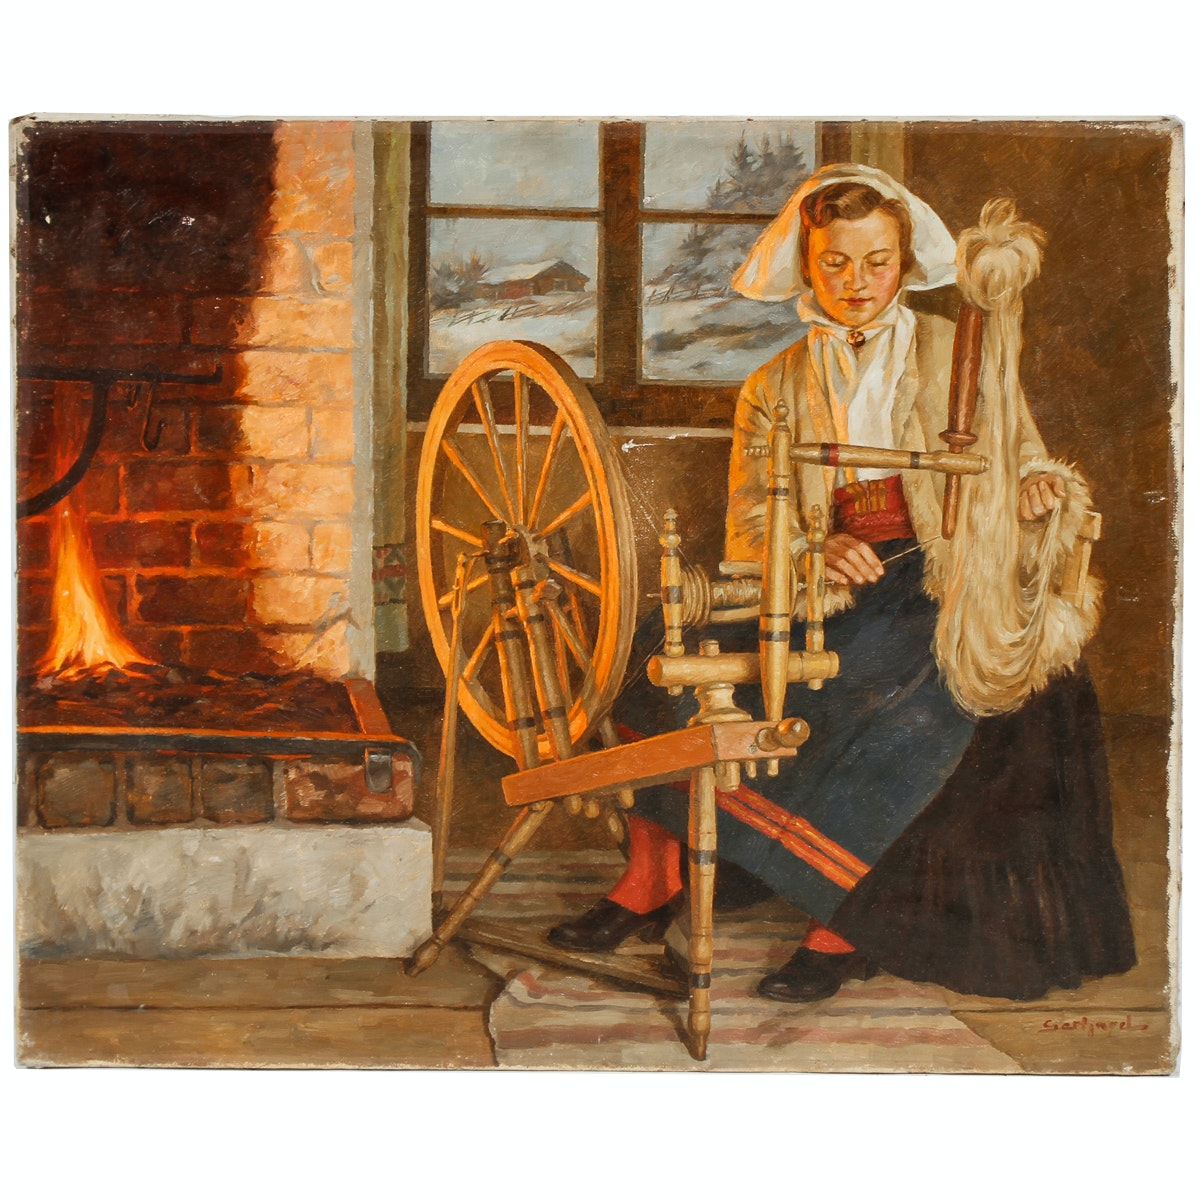 Gerhard Oil Painting of a Woman Spinning Yarn